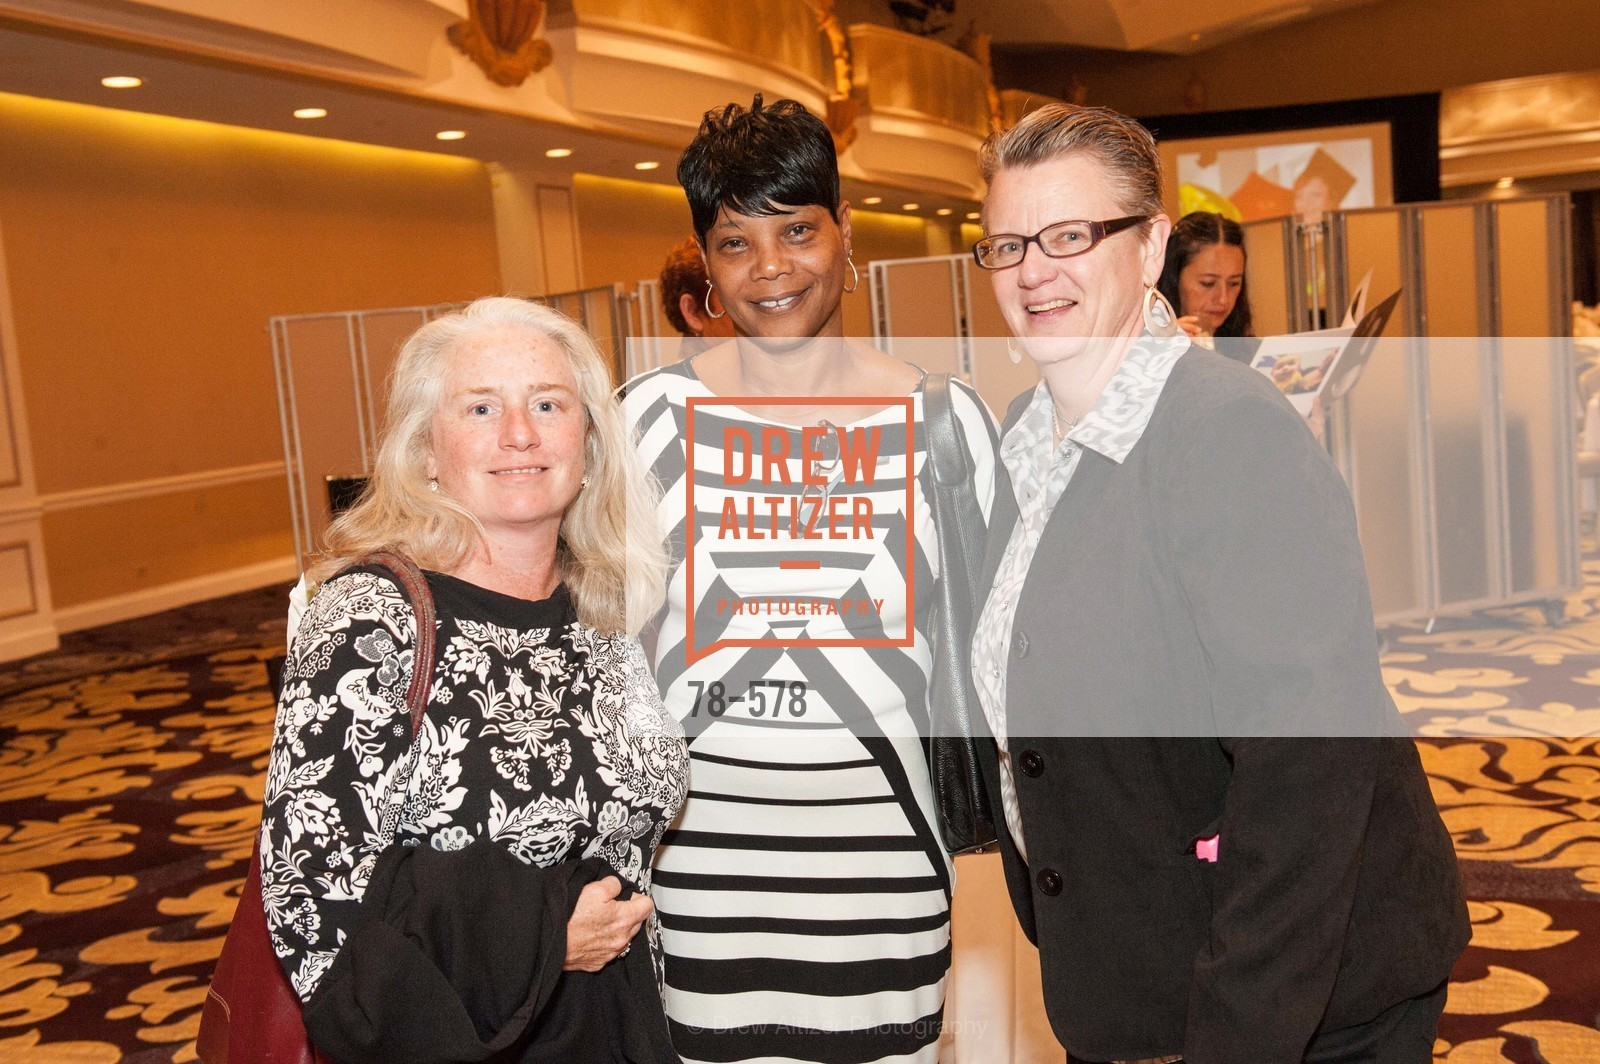 Alice Hargis, Patricia Richards, Elyse Graham, HOMELESS PRENATAL Annual Luncheon 2014, US, September 30th, 2014,Drew Altizer, Drew Altizer Photography, full-service agency, private events, San Francisco photographer, photographer california